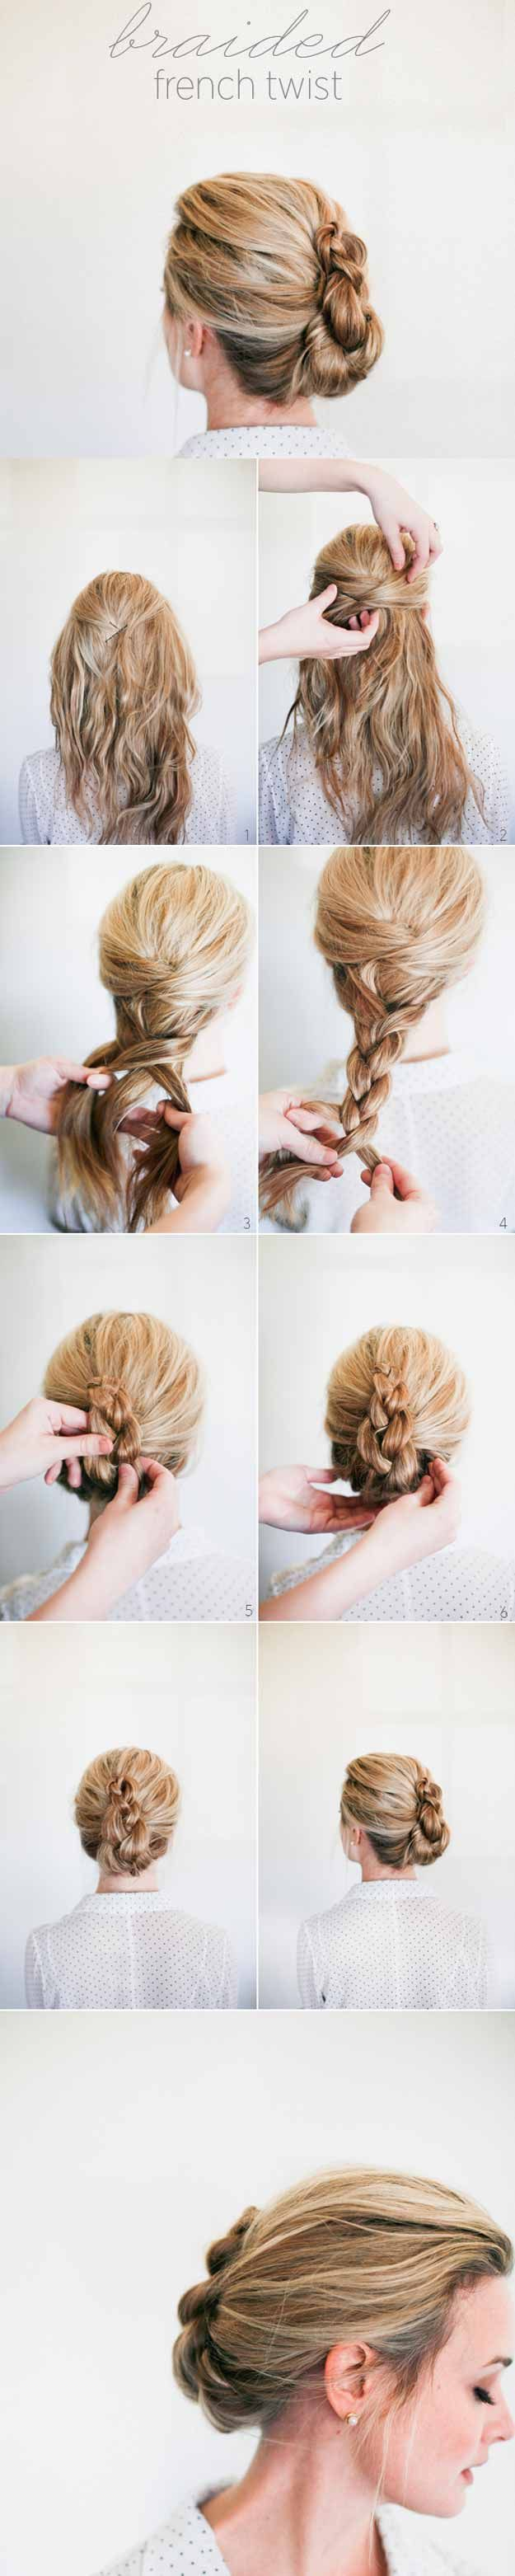 347 best Hairstyles for Medium Length Hair images on Pinterest